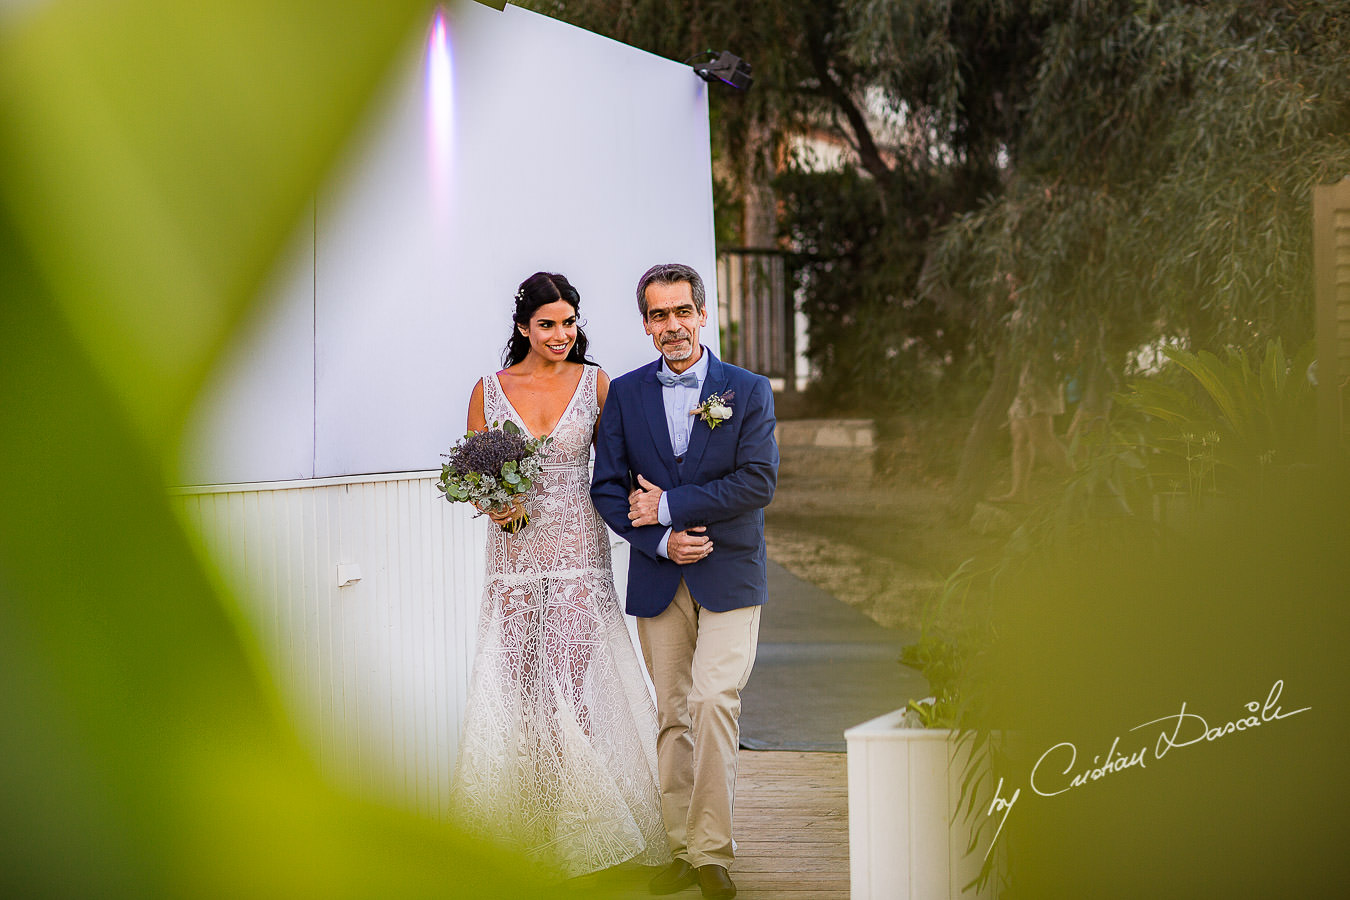 The bride's arrival captured during a wedding photography at the Lighthouse Limassol, by Cyprus Photographer Cristian Dascalu.